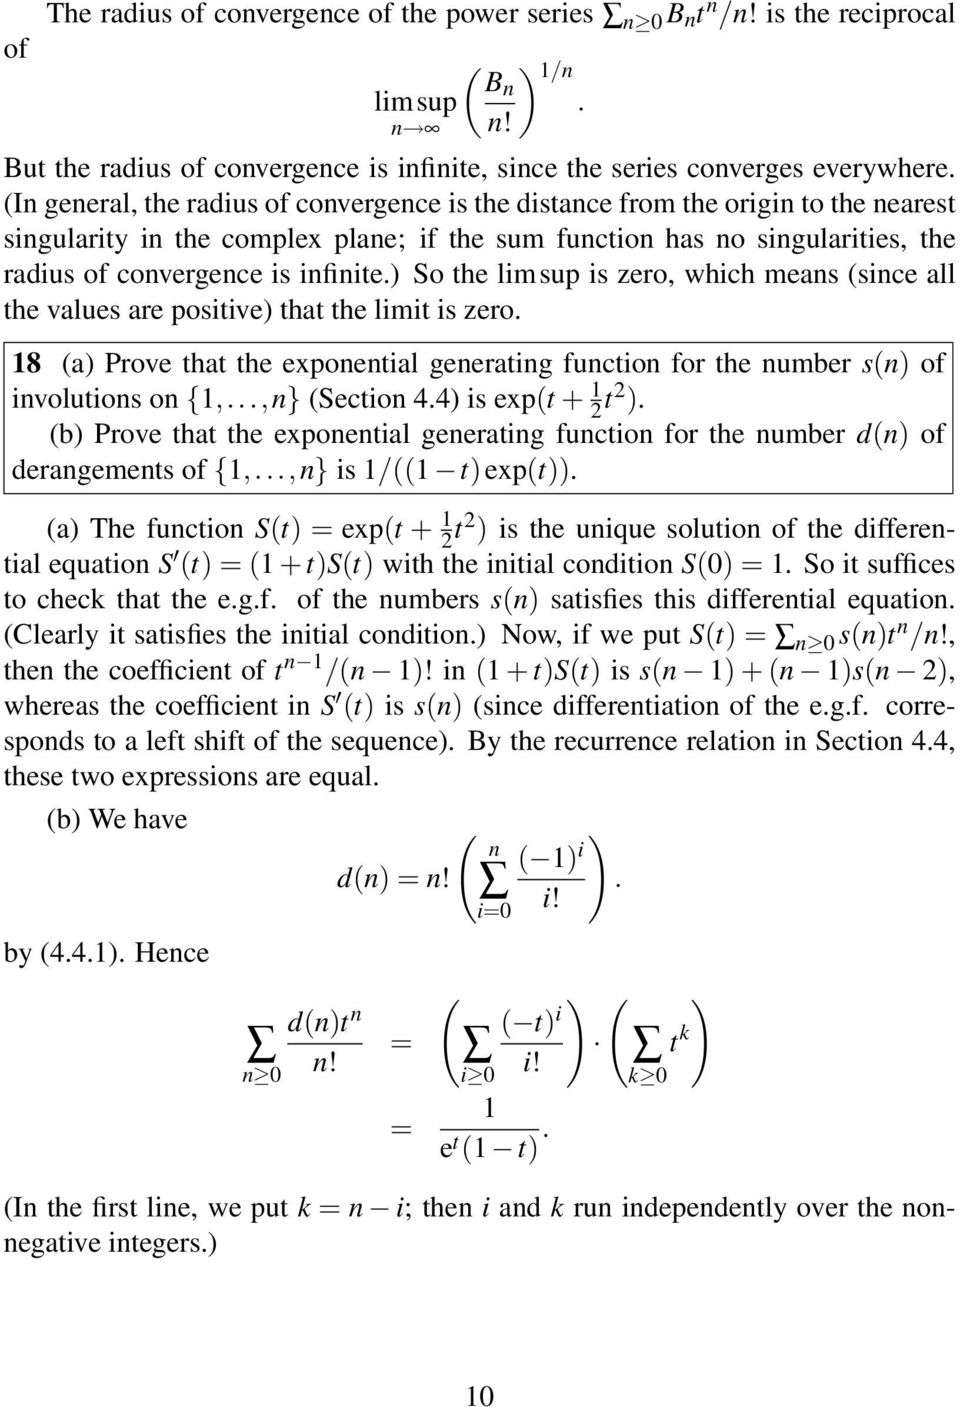 ) So the limsup is zero, which meas (sice all the values are positive) that the limit is zero. 18 (a) Prove that the expoetial geeratig fuctio for the umber s() of ivolutios o {1,...,} (Sectio 4.